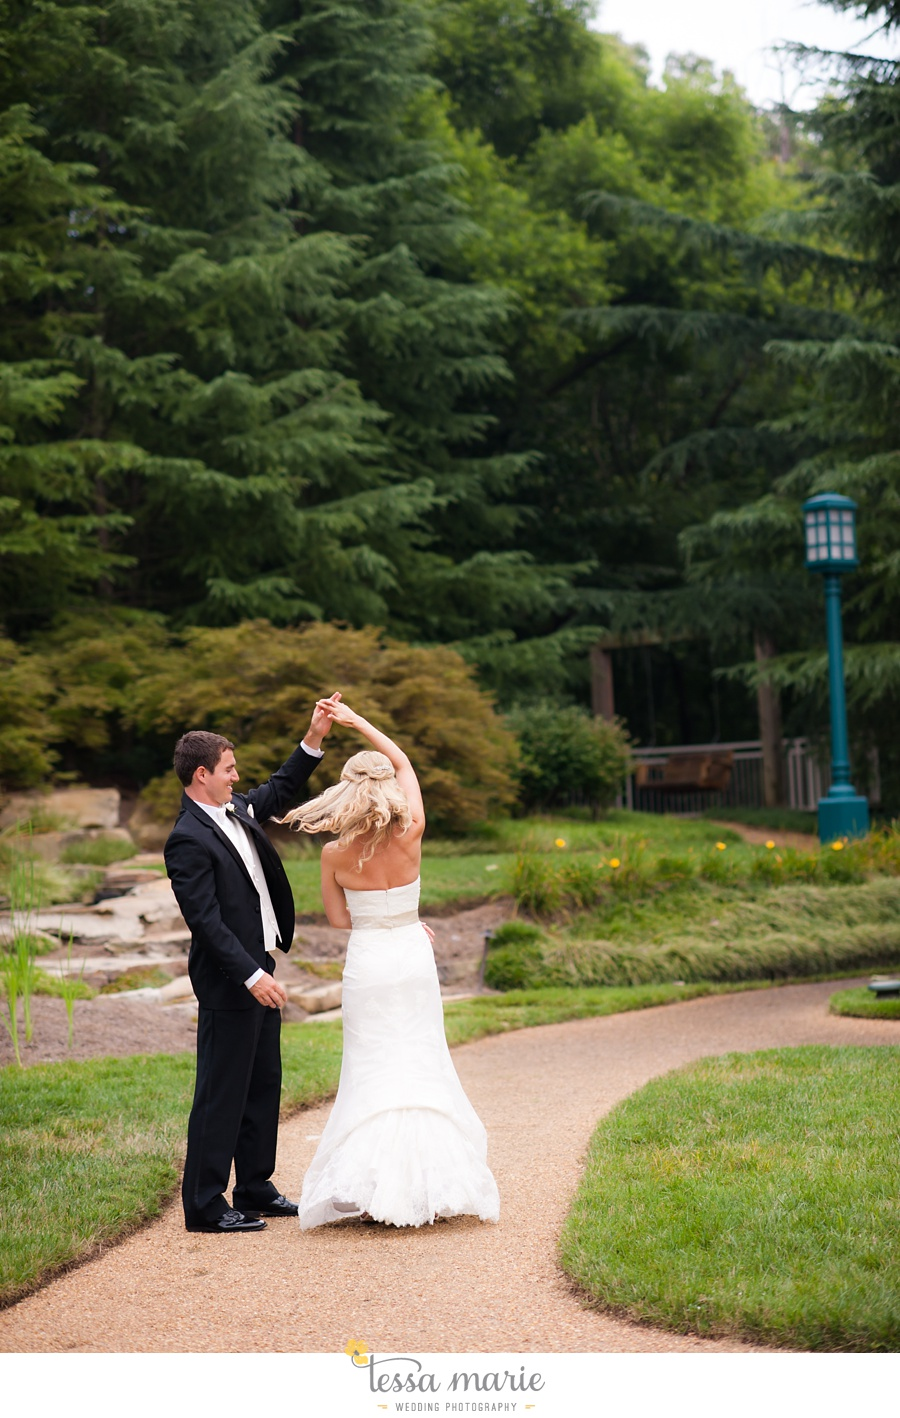 christ_the_king_wedding_pictures_Villa_christina_wedding_tessa_marie_weddings_0097